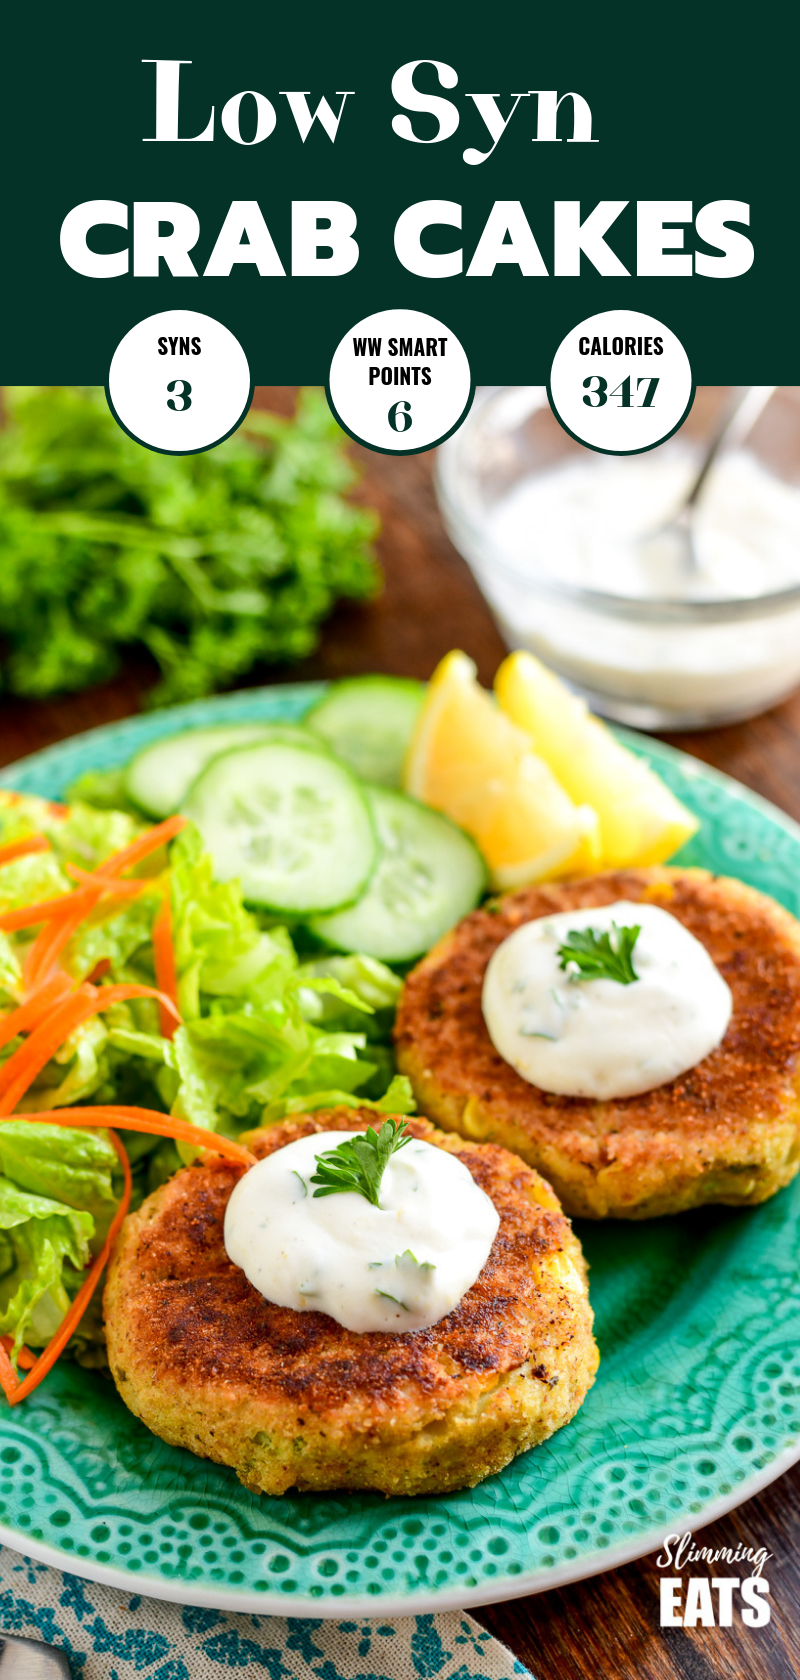 low syn crab cakes on a green plate with side salad pin image